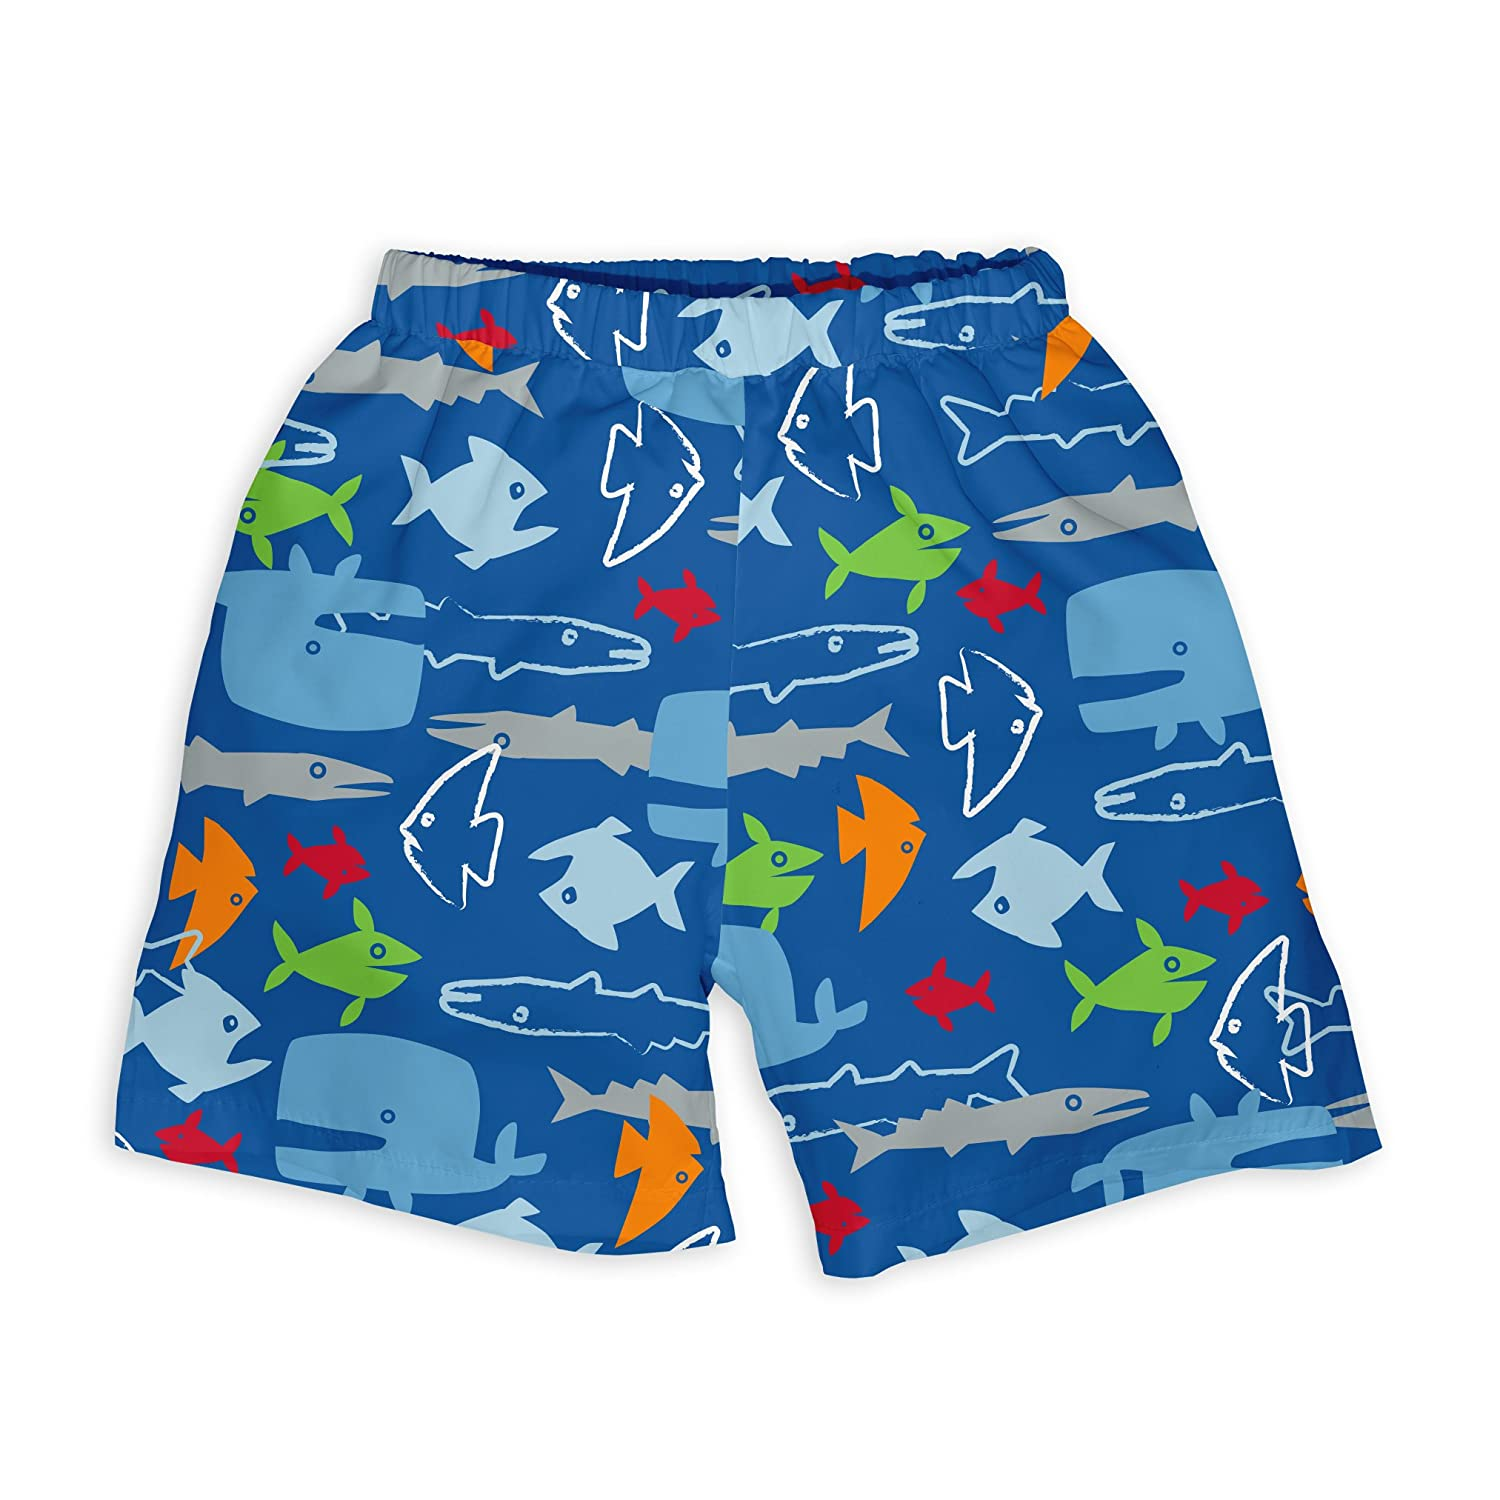 607a47d1b672e Boys Trunks with Built-in Reusable Swim Diaper | The original, patented  triple-layer absorbent swim diaper | Comfort seams, UPF 50+ protection, ...